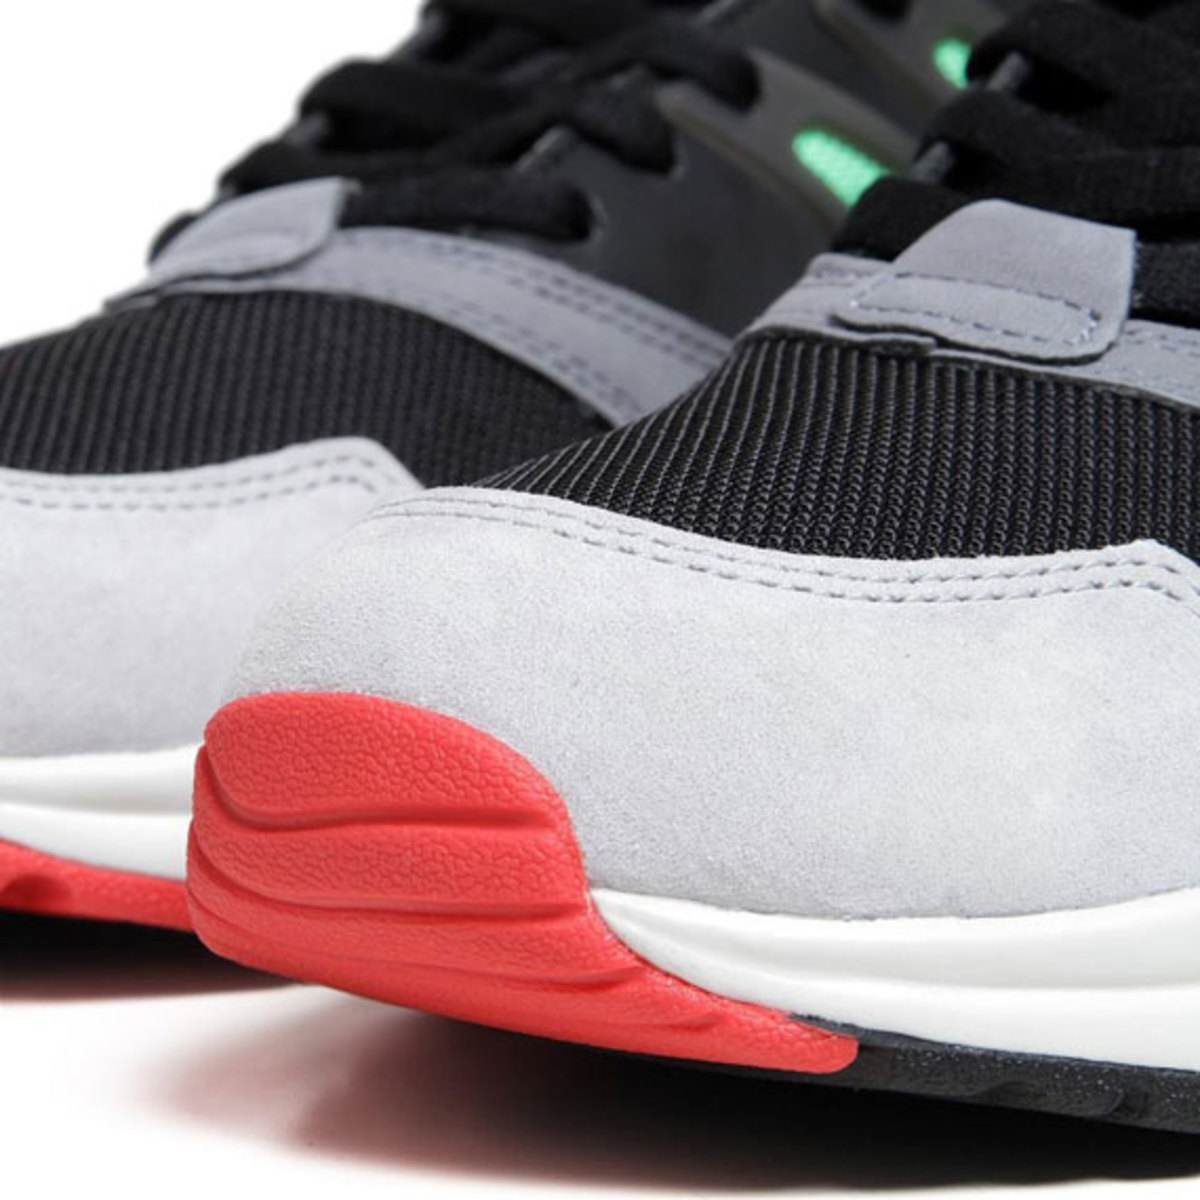 solebox-adidas-consortium-torsion-allegra-release-reminder-06